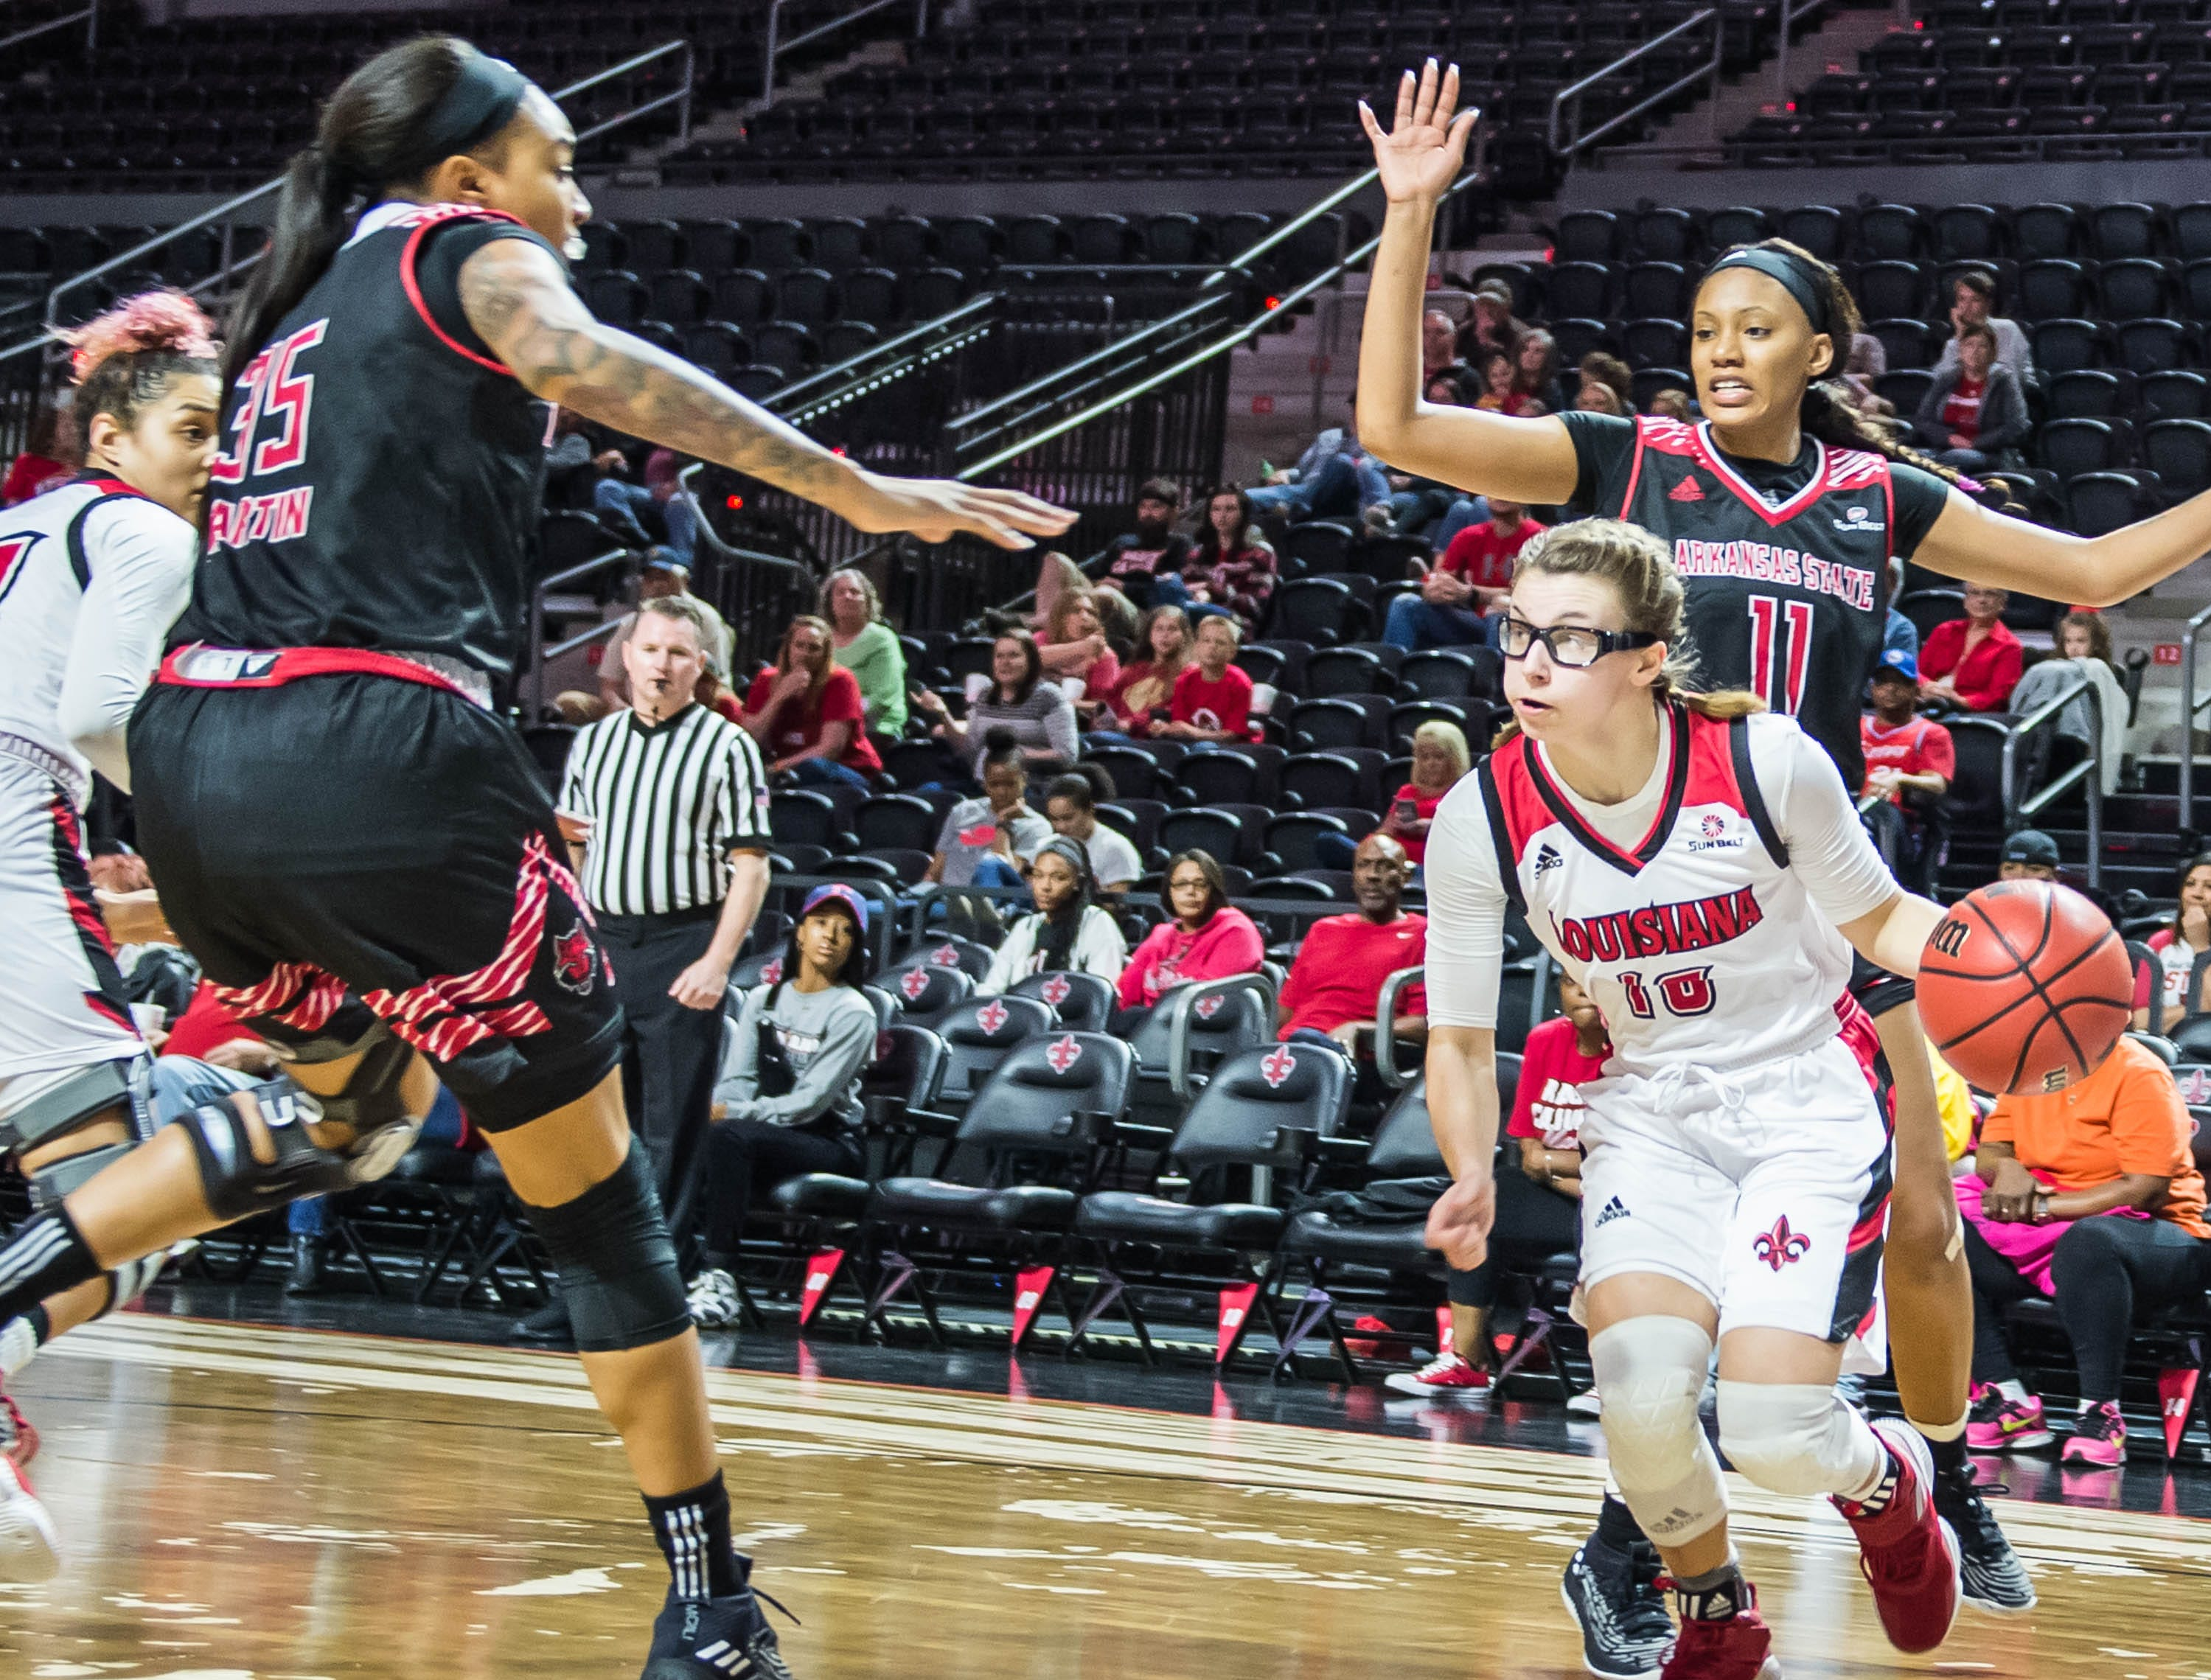 Cajuns guard Andrea Cournoyer (10) looks to pass the ball on the baseline.